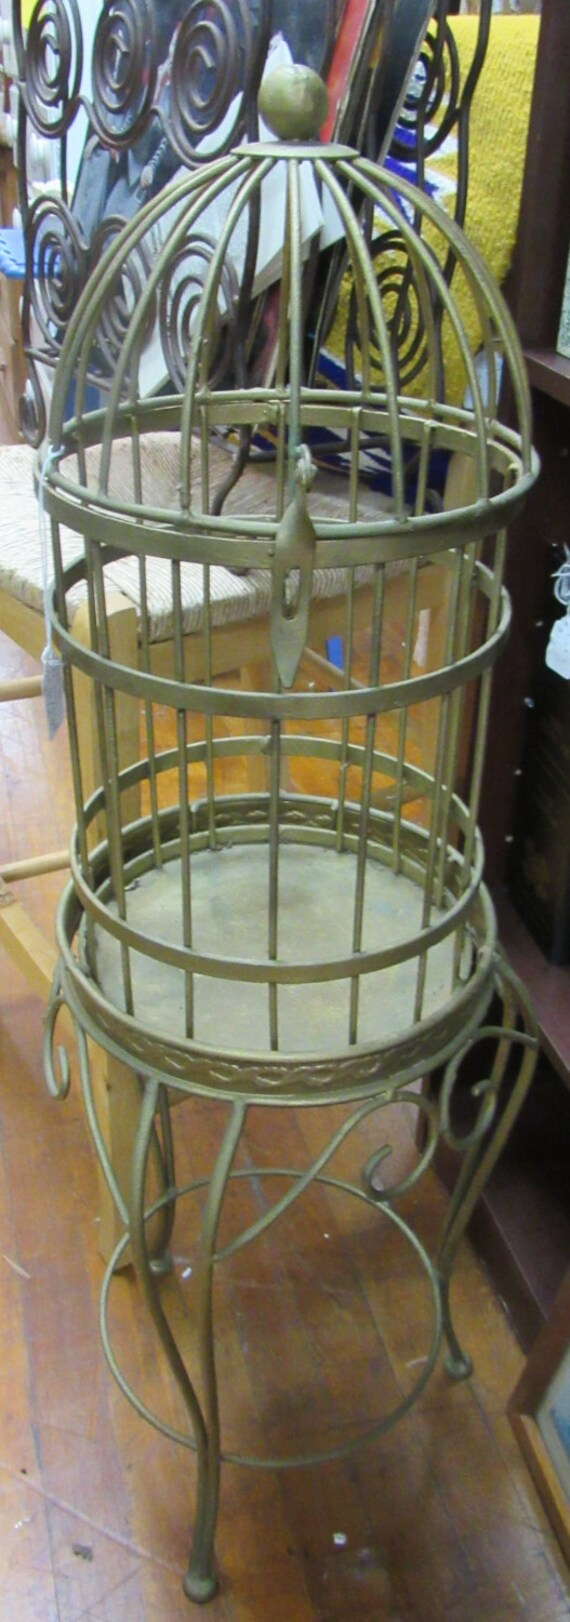 Metal Birdcage Planter